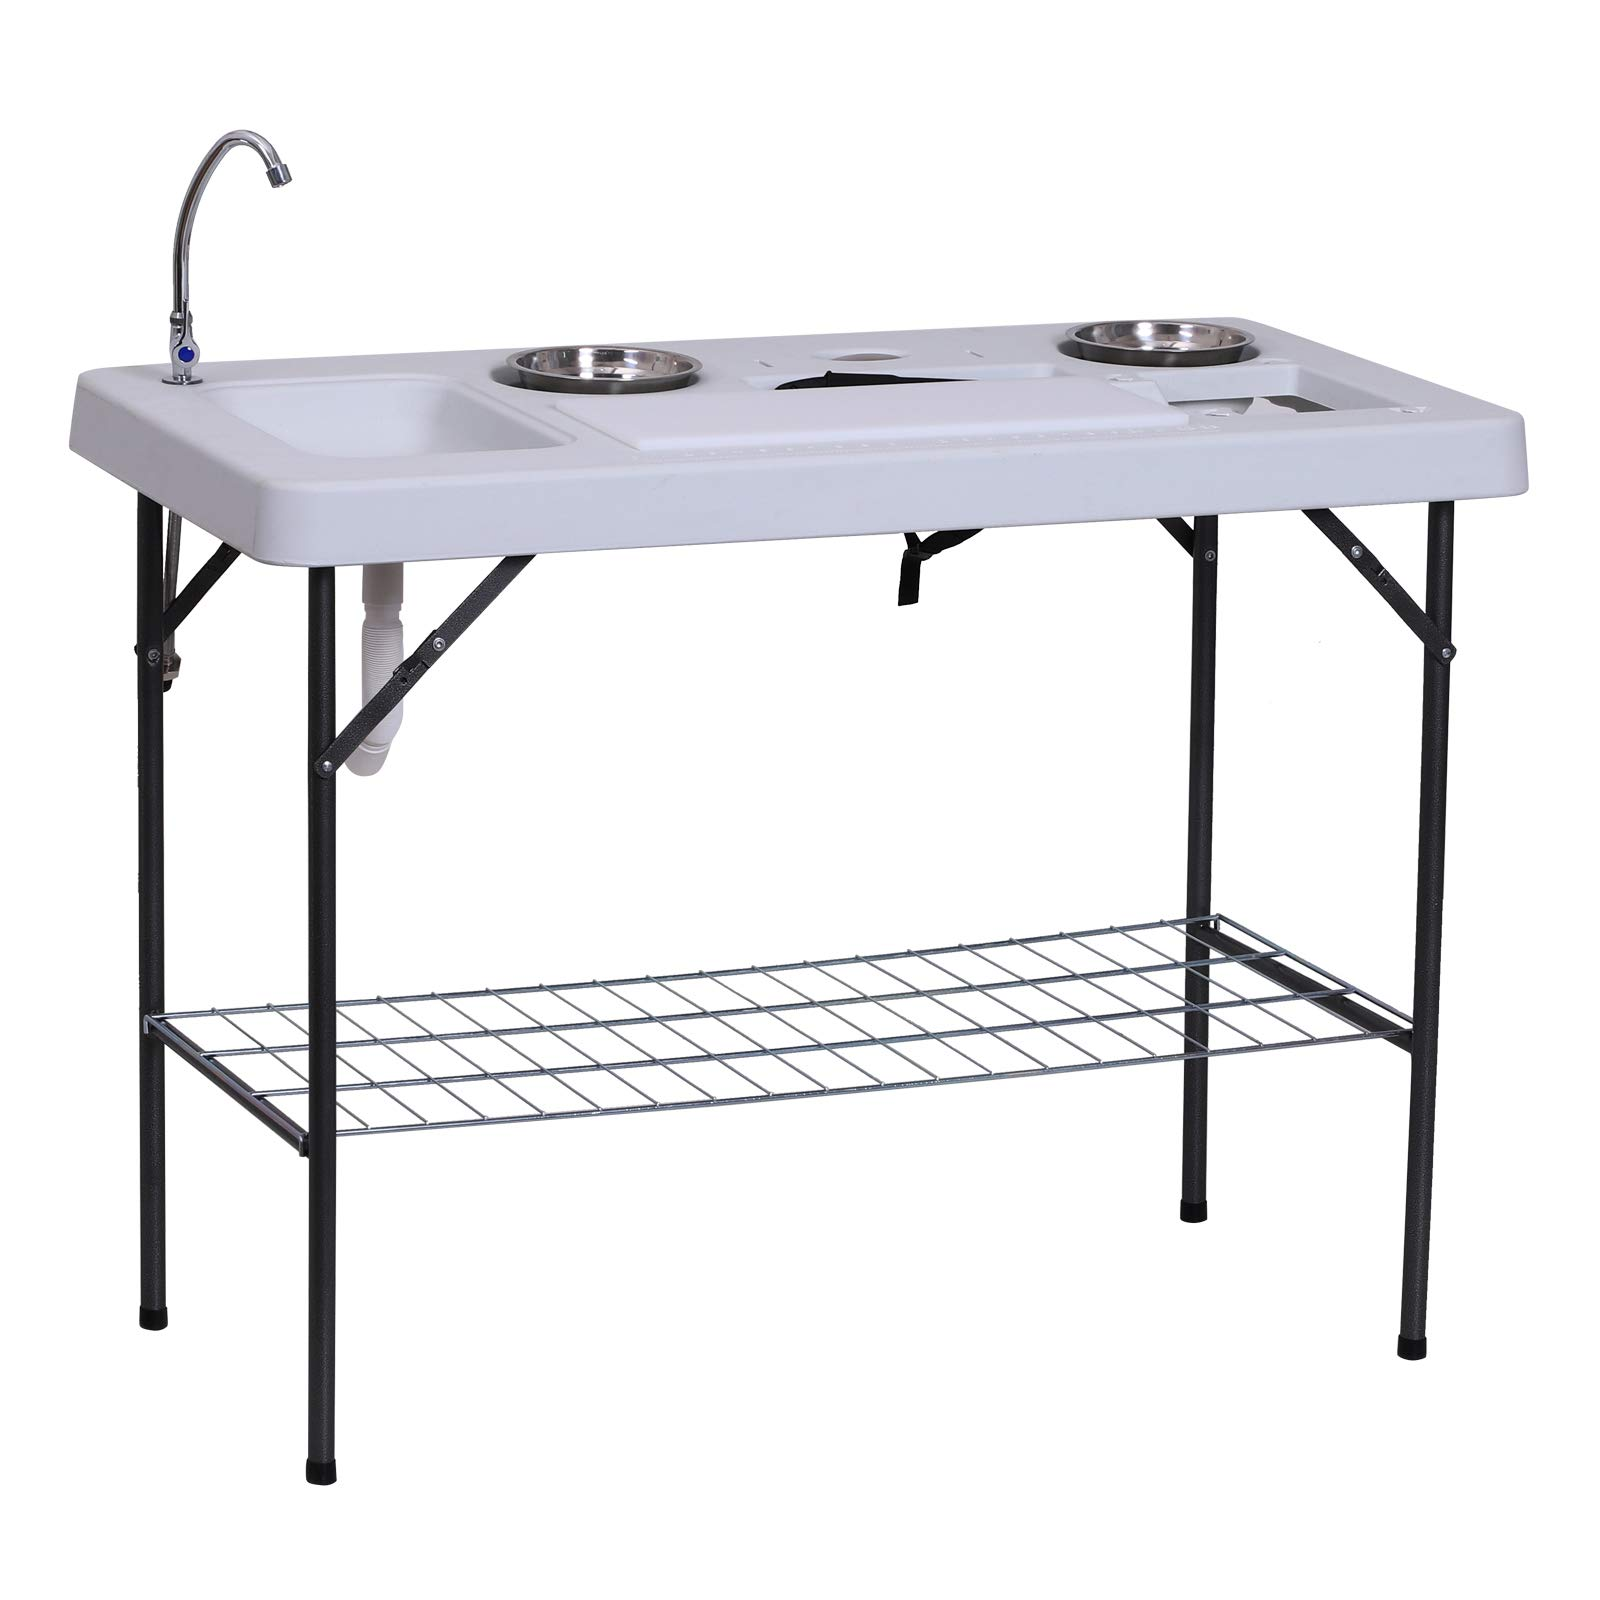 Outsunny 50'' L Folding Fish Cleaning Table with Sink, Faucet, and Accessories